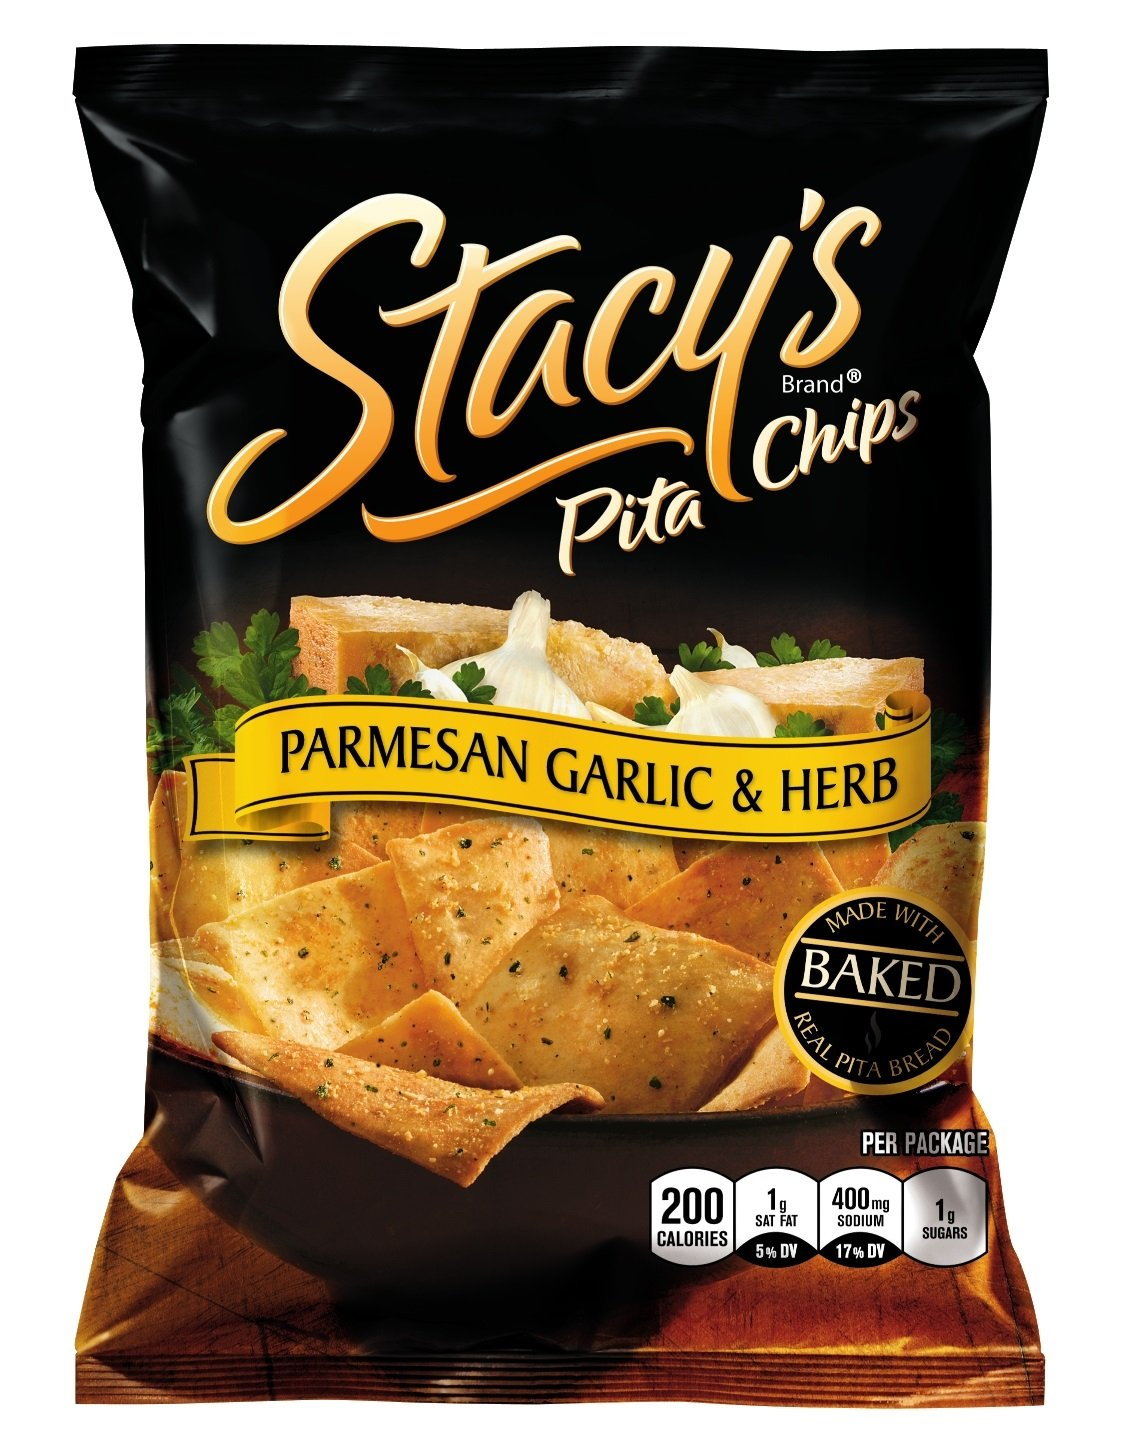 Stacy's Pita Chips, Parmesan Garlic and Herb, 1.5 Ounce (Pack of 24)